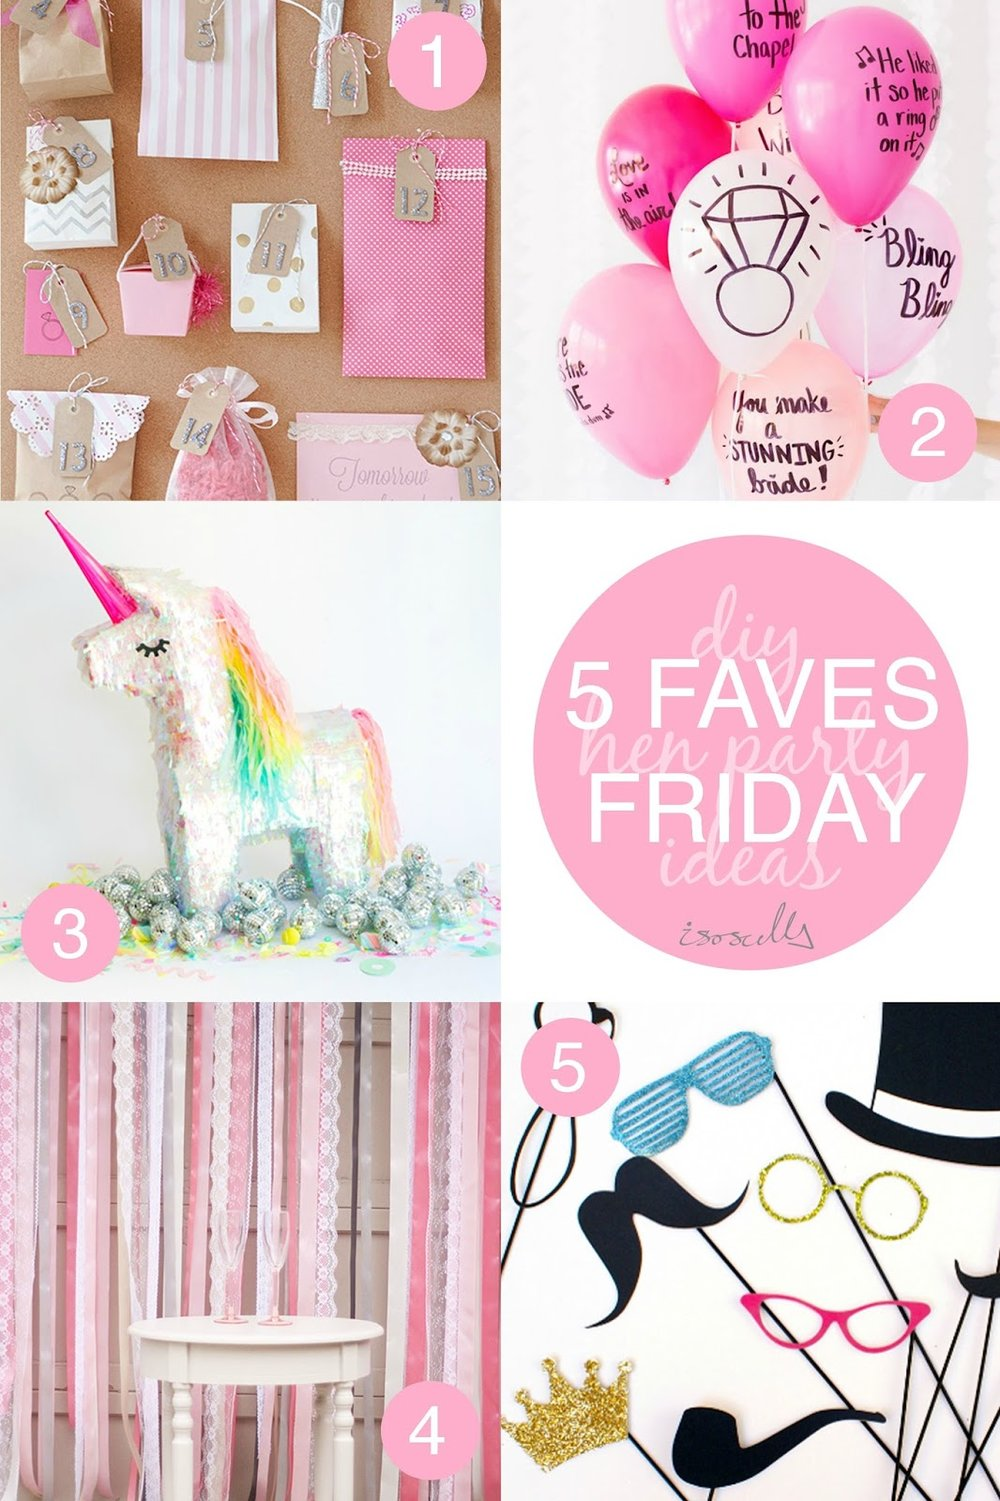 Five Faves Friday DIY Hen Party Ideas by Isoscella